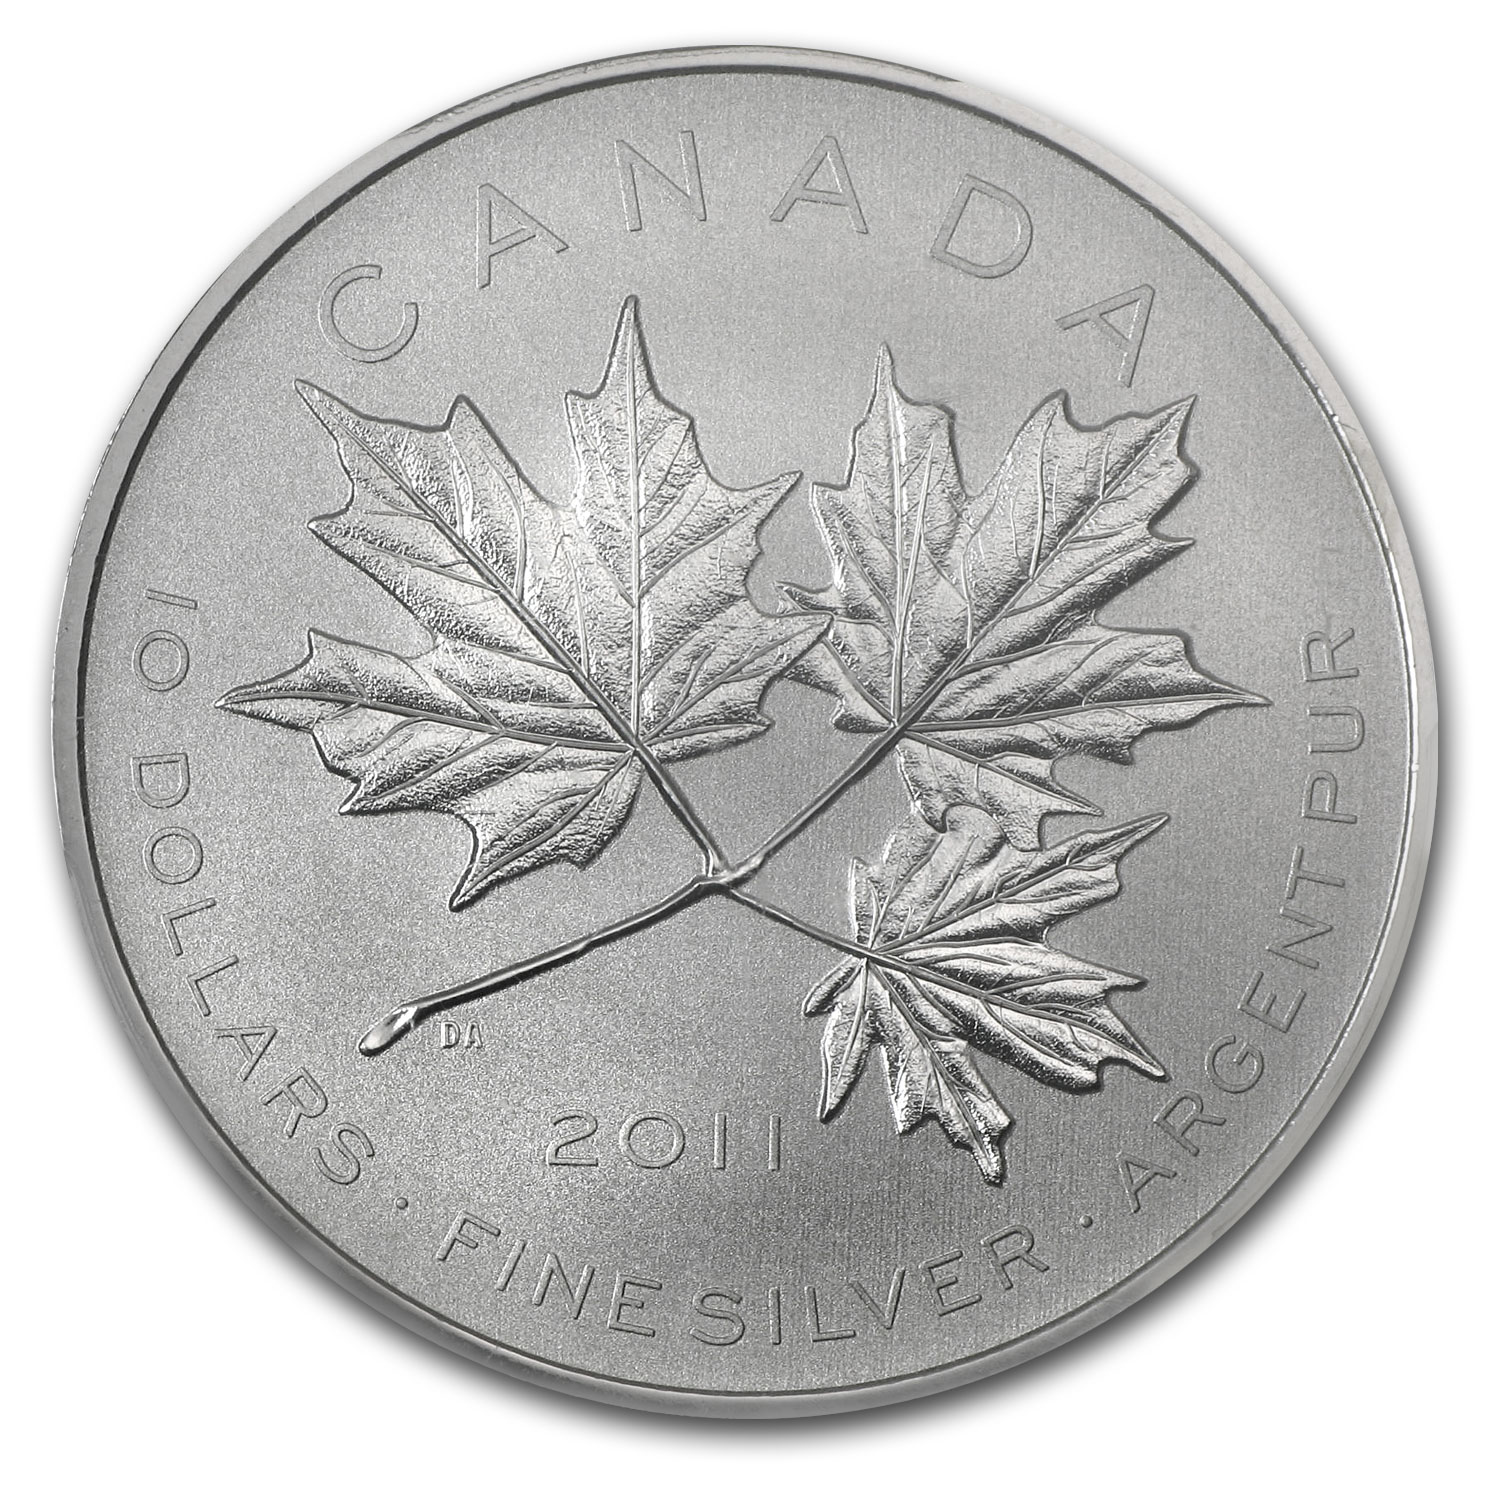 2011 Canada 1/2 oz Silver $10 Maple Leaf Forever MS-69 PCGS